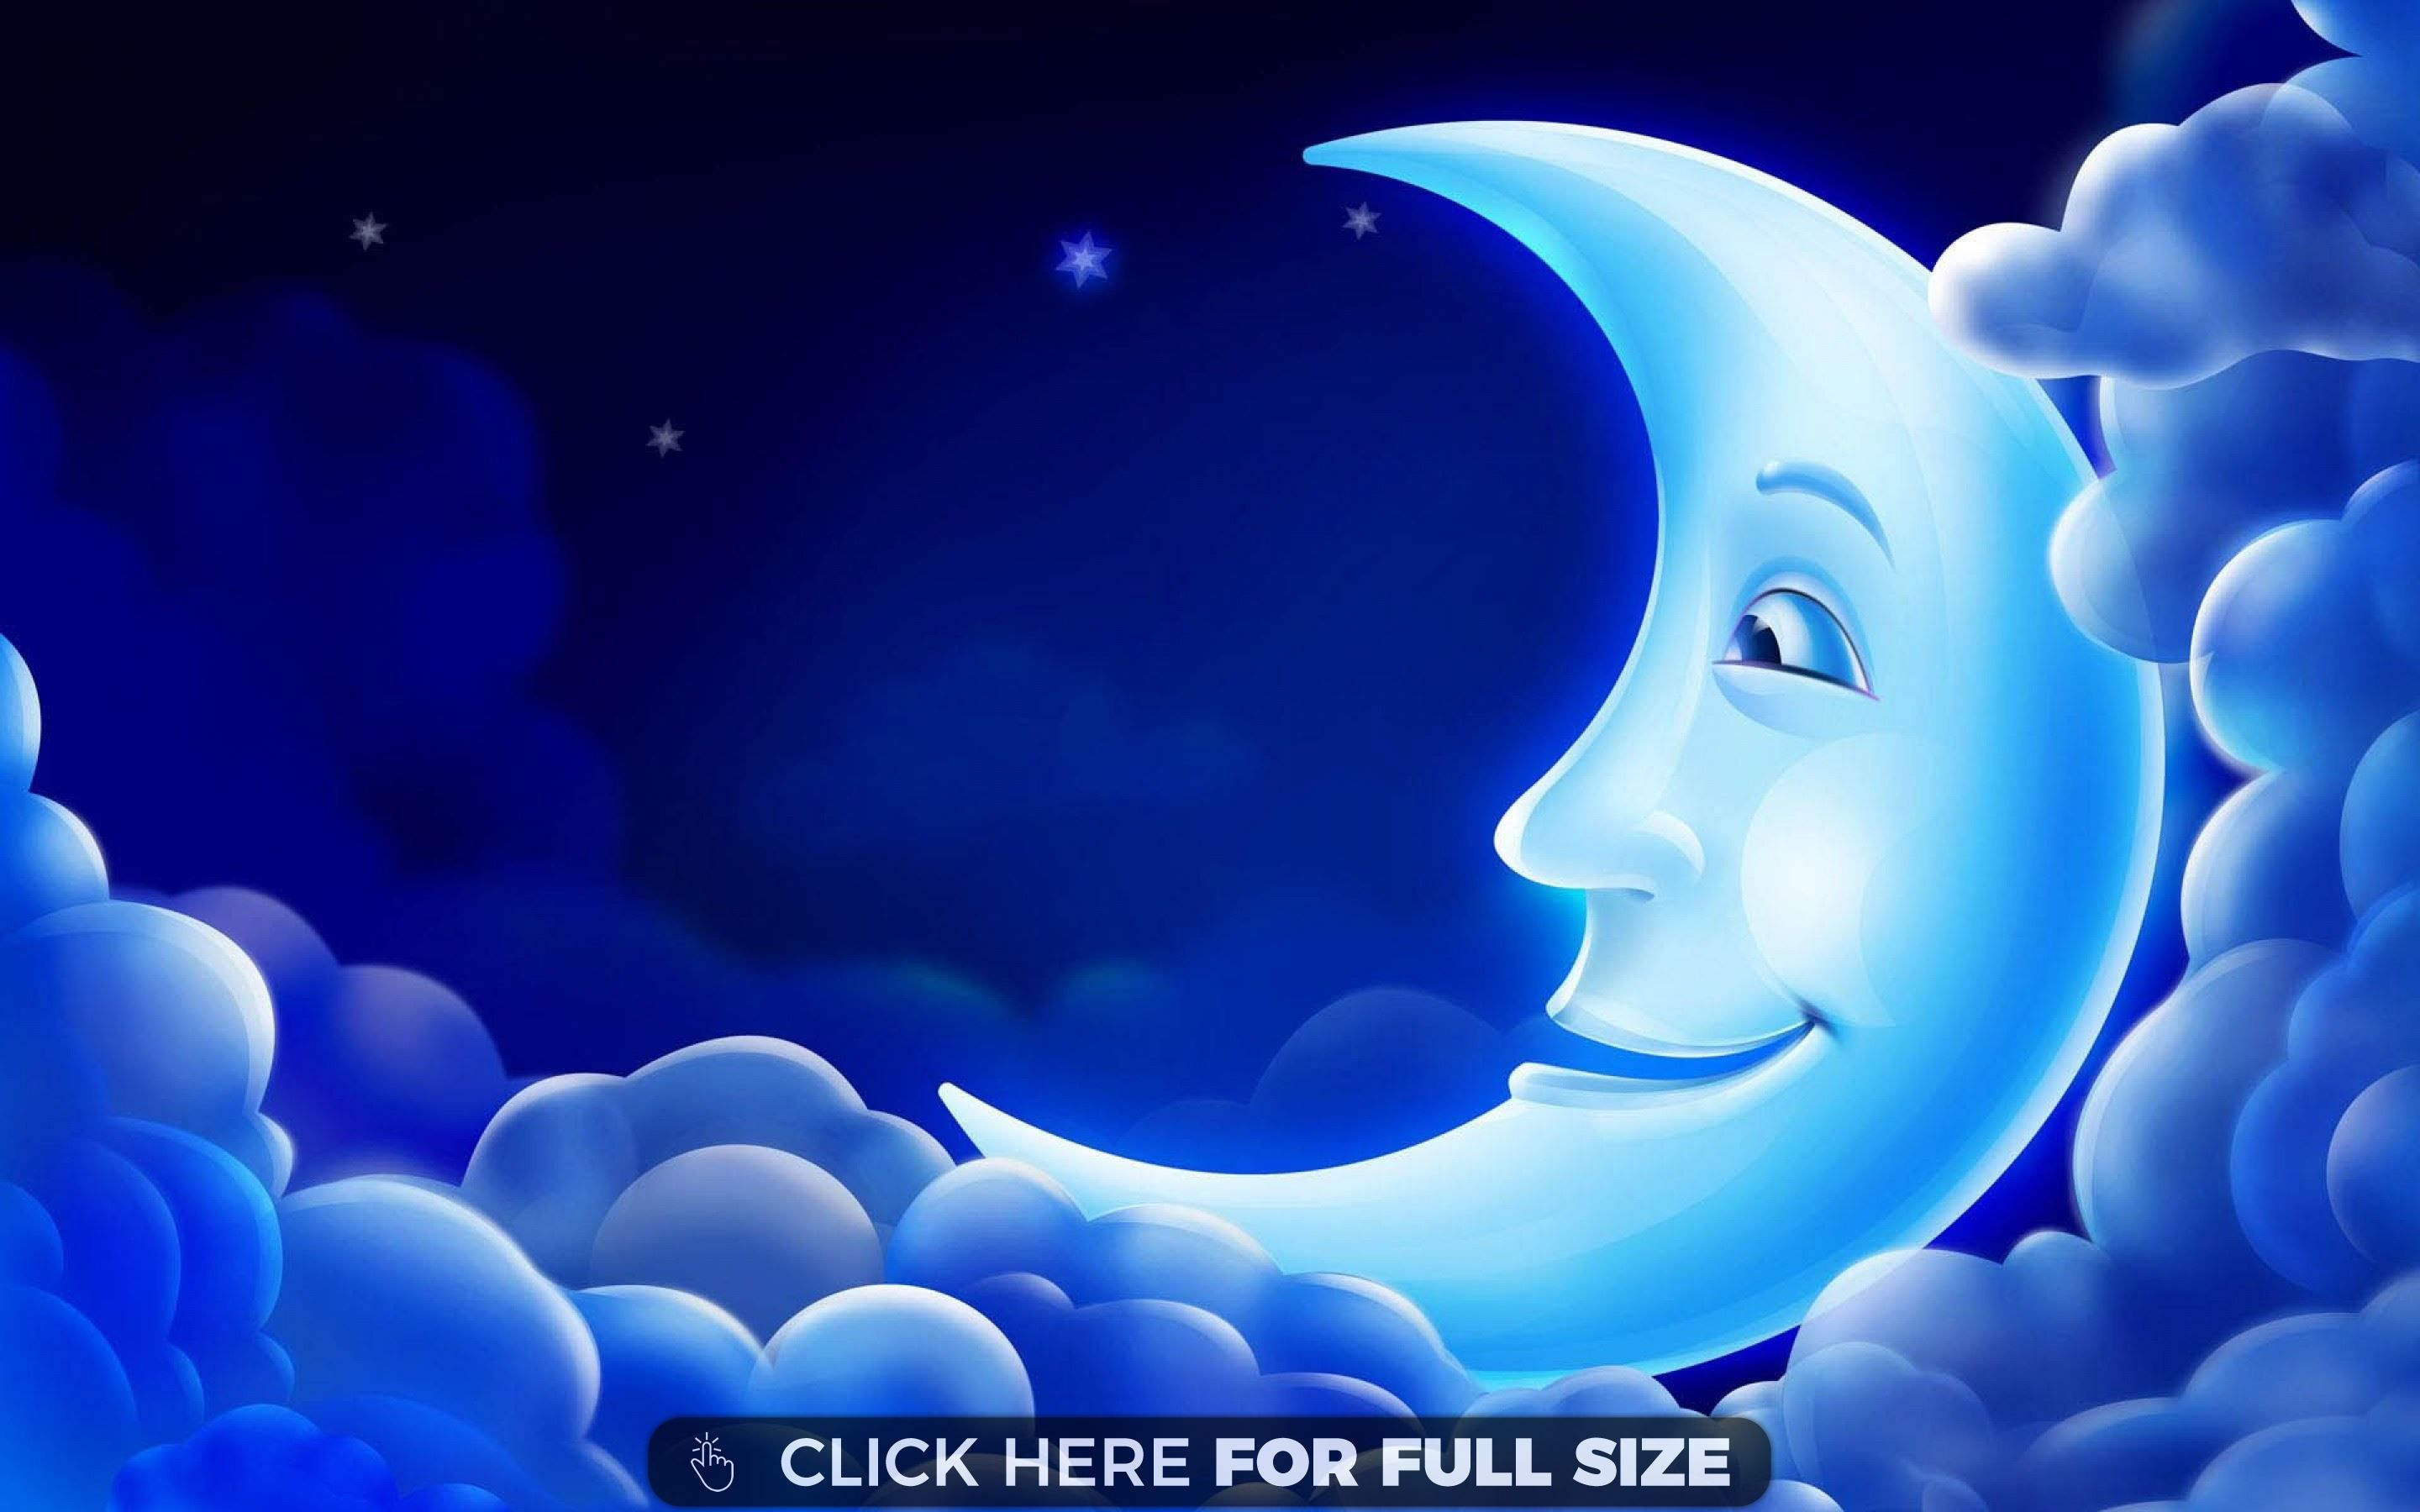 Free Download Free Animated Wallpaper 3d Animation Wallpaper Star Wallpaper